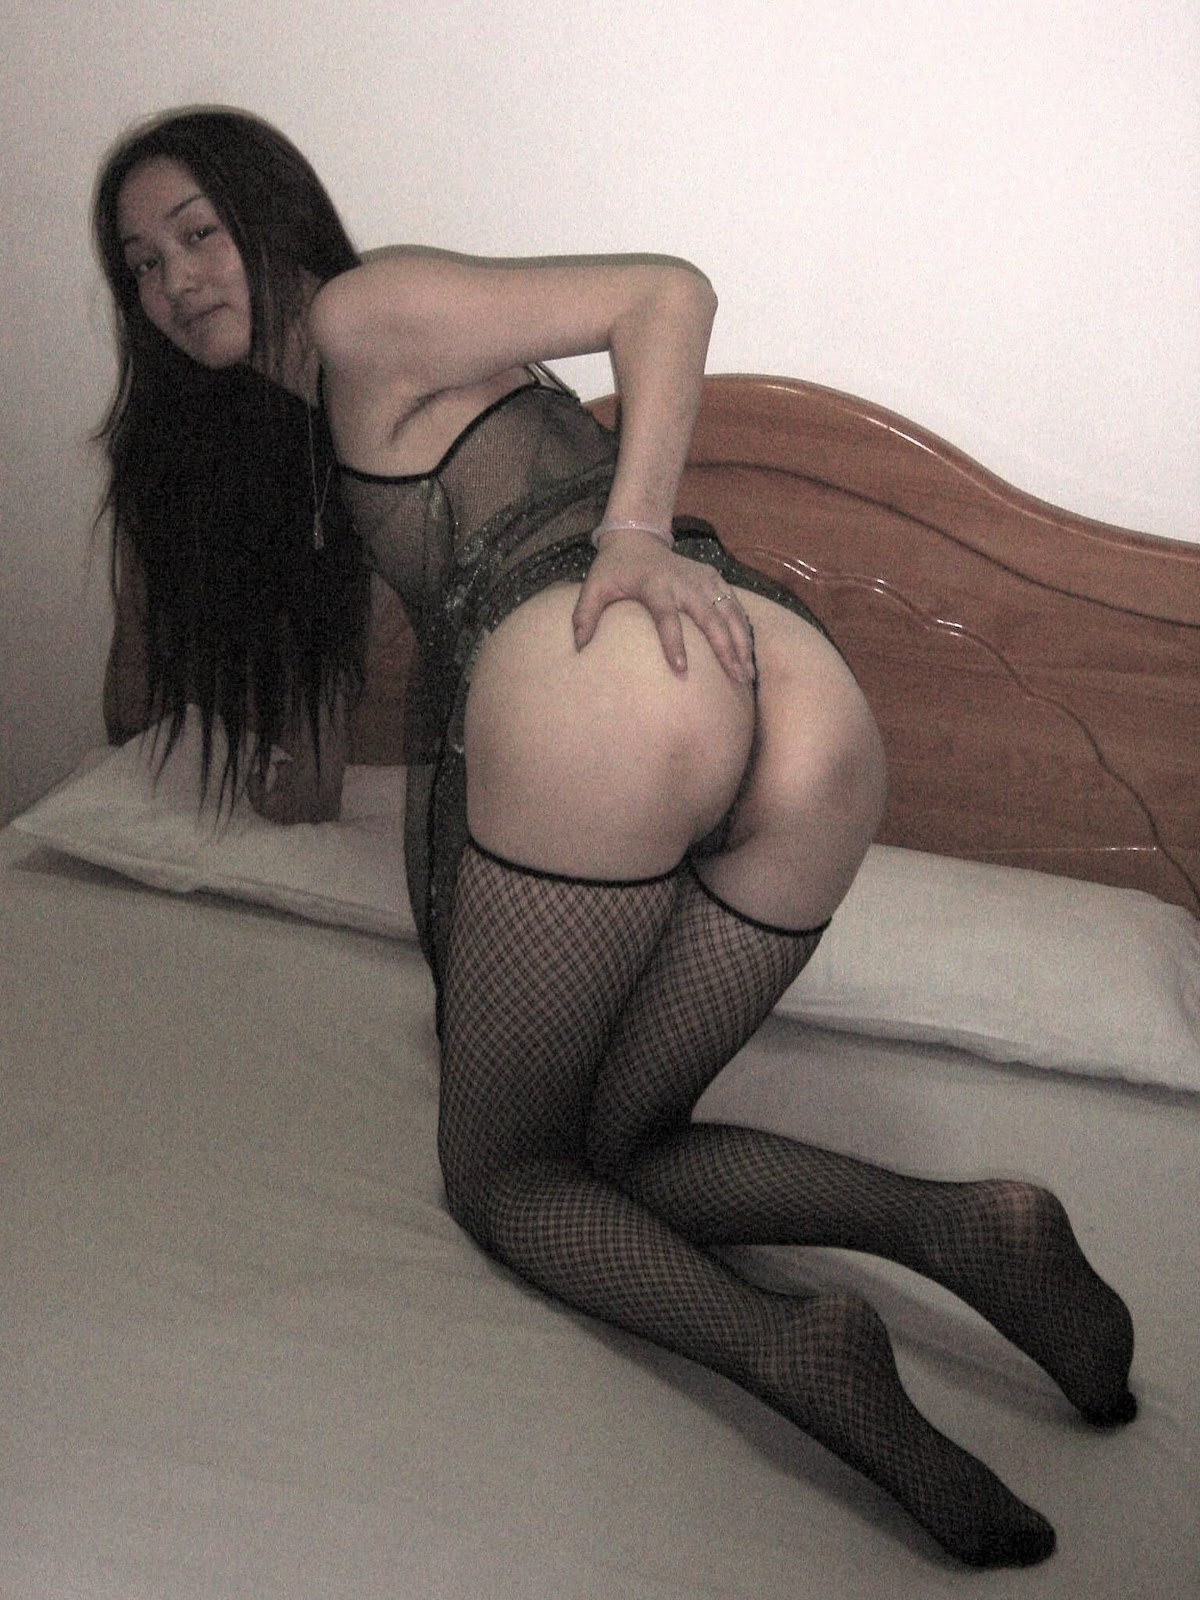 uncensord chinese amateur nude Amateur Chinese Chick From The PRC With Private Nudes